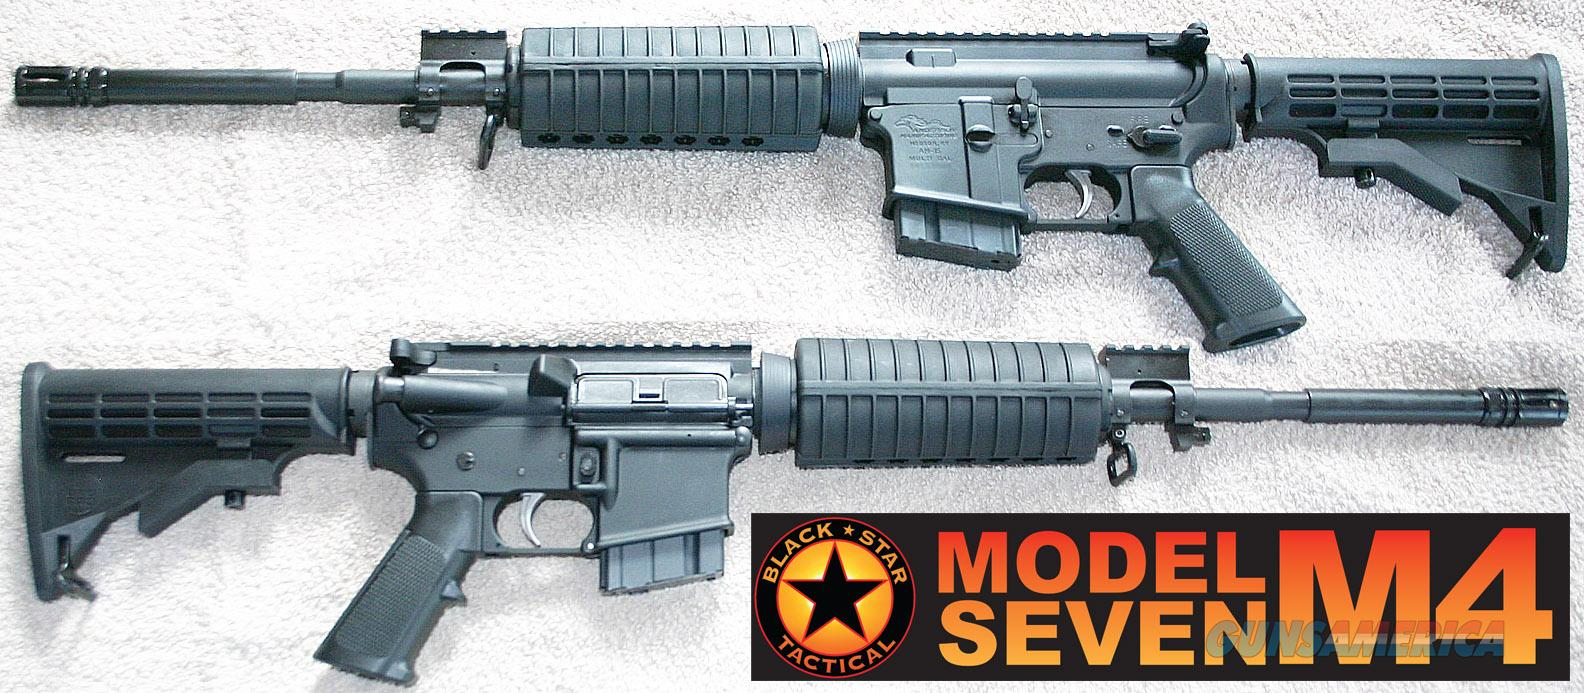 NEW ANDERSON MFG 7.62X39MM AR/M4 CARBINE - CHROME LINED 1/9.5 BBL  Guns > Rifles > Tactical Rifles Misc.